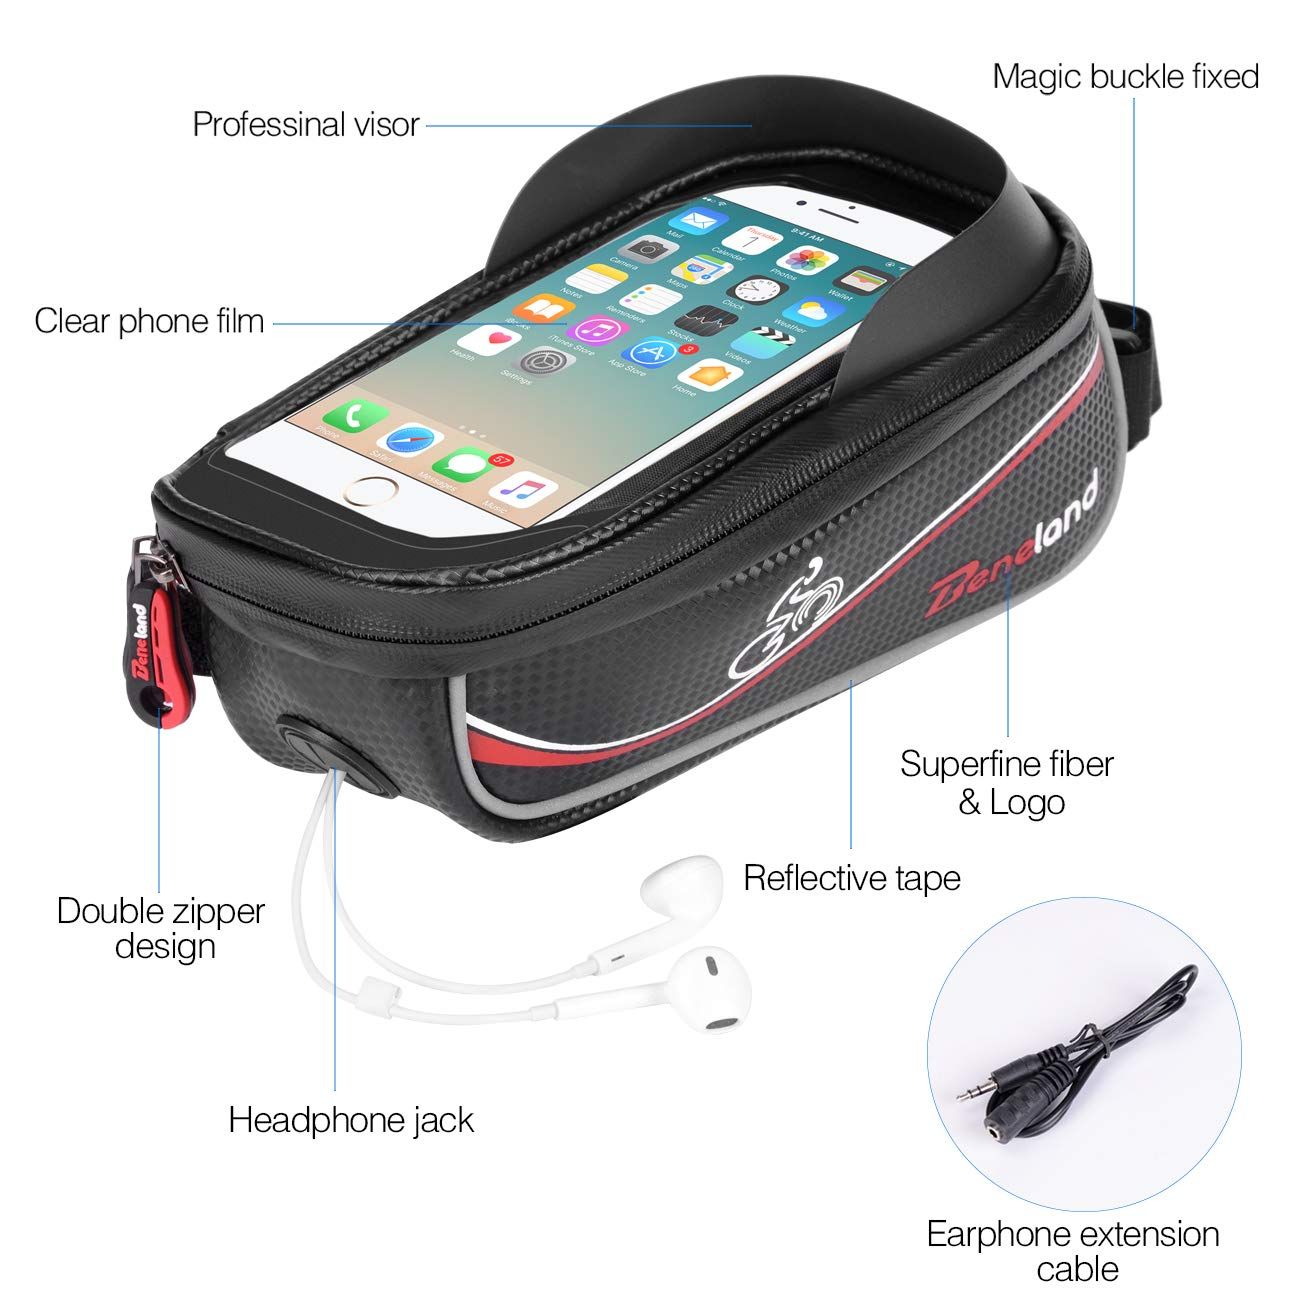 Bike Bag, Frame Bike Bag with Waterproof Touch Screen Phone Holder Case for iPhone X 8 7 6s 6 plus 5s 5/Samsung Galaxy s7 s6 note 7 Cellphone Below 6.0 Inch by Beneland (Image #4)